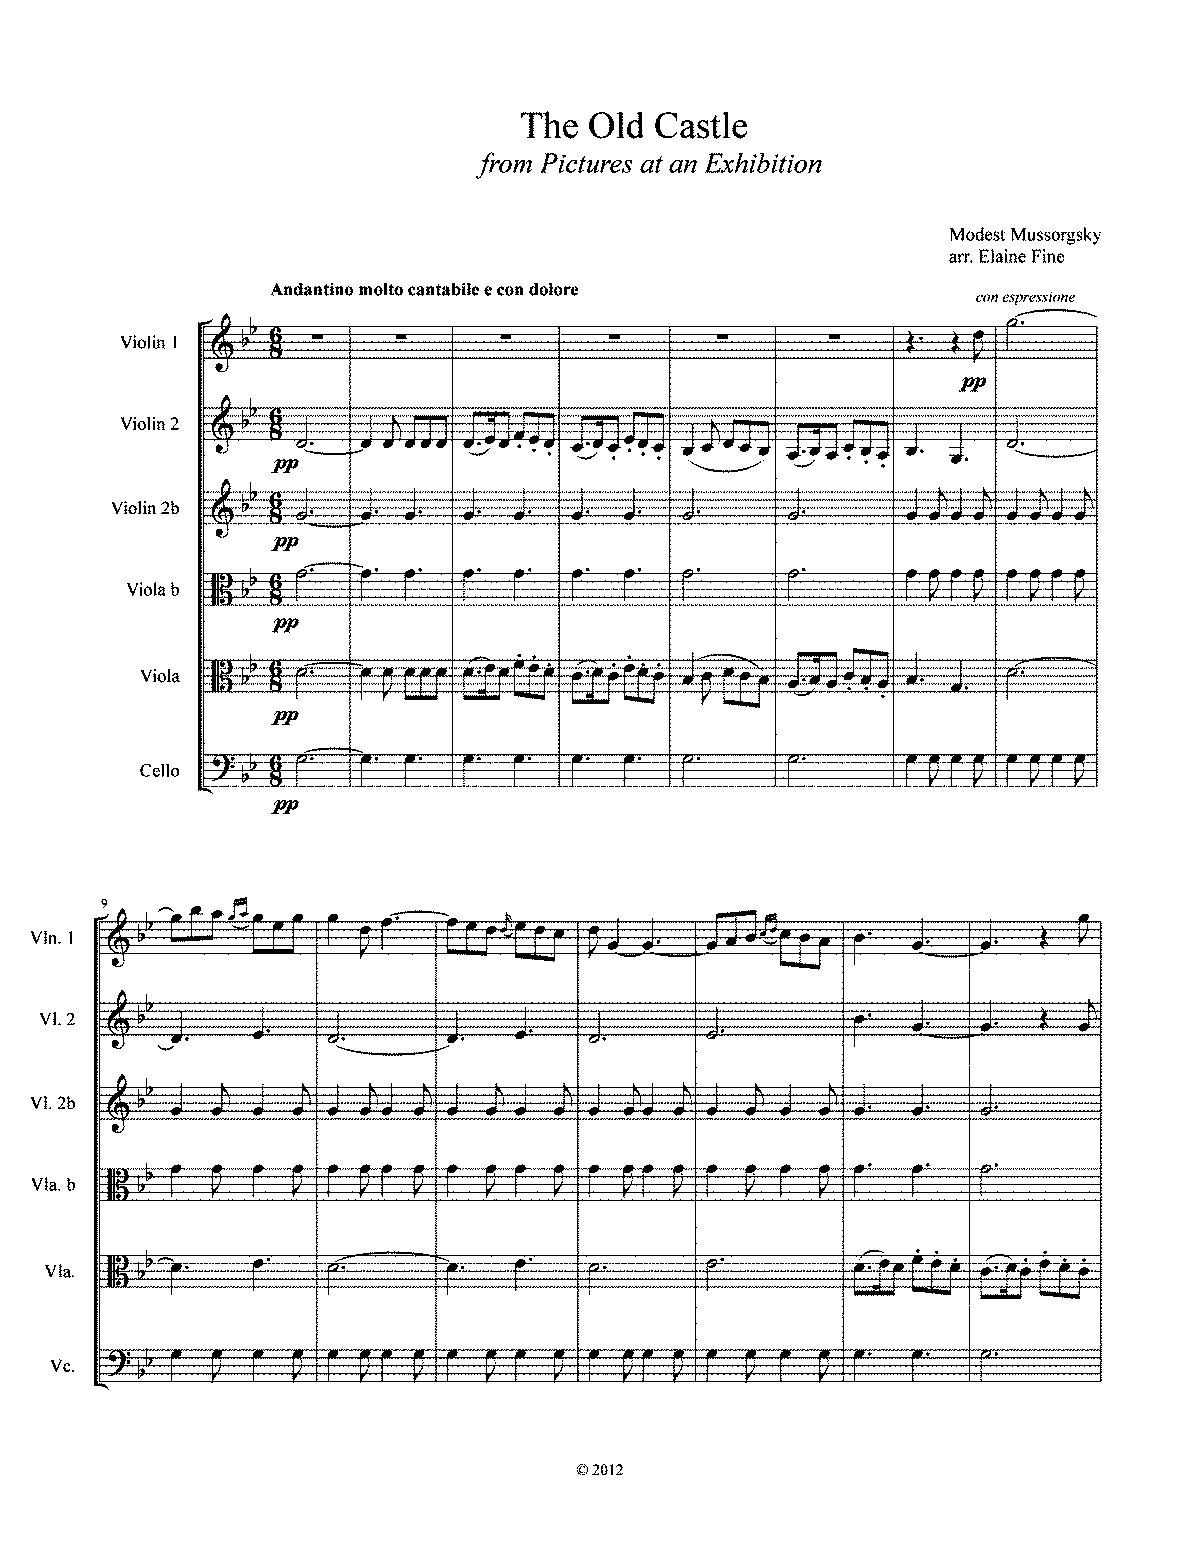 PMLP03722-The Old Castle for Strings Score and Parts.pdf